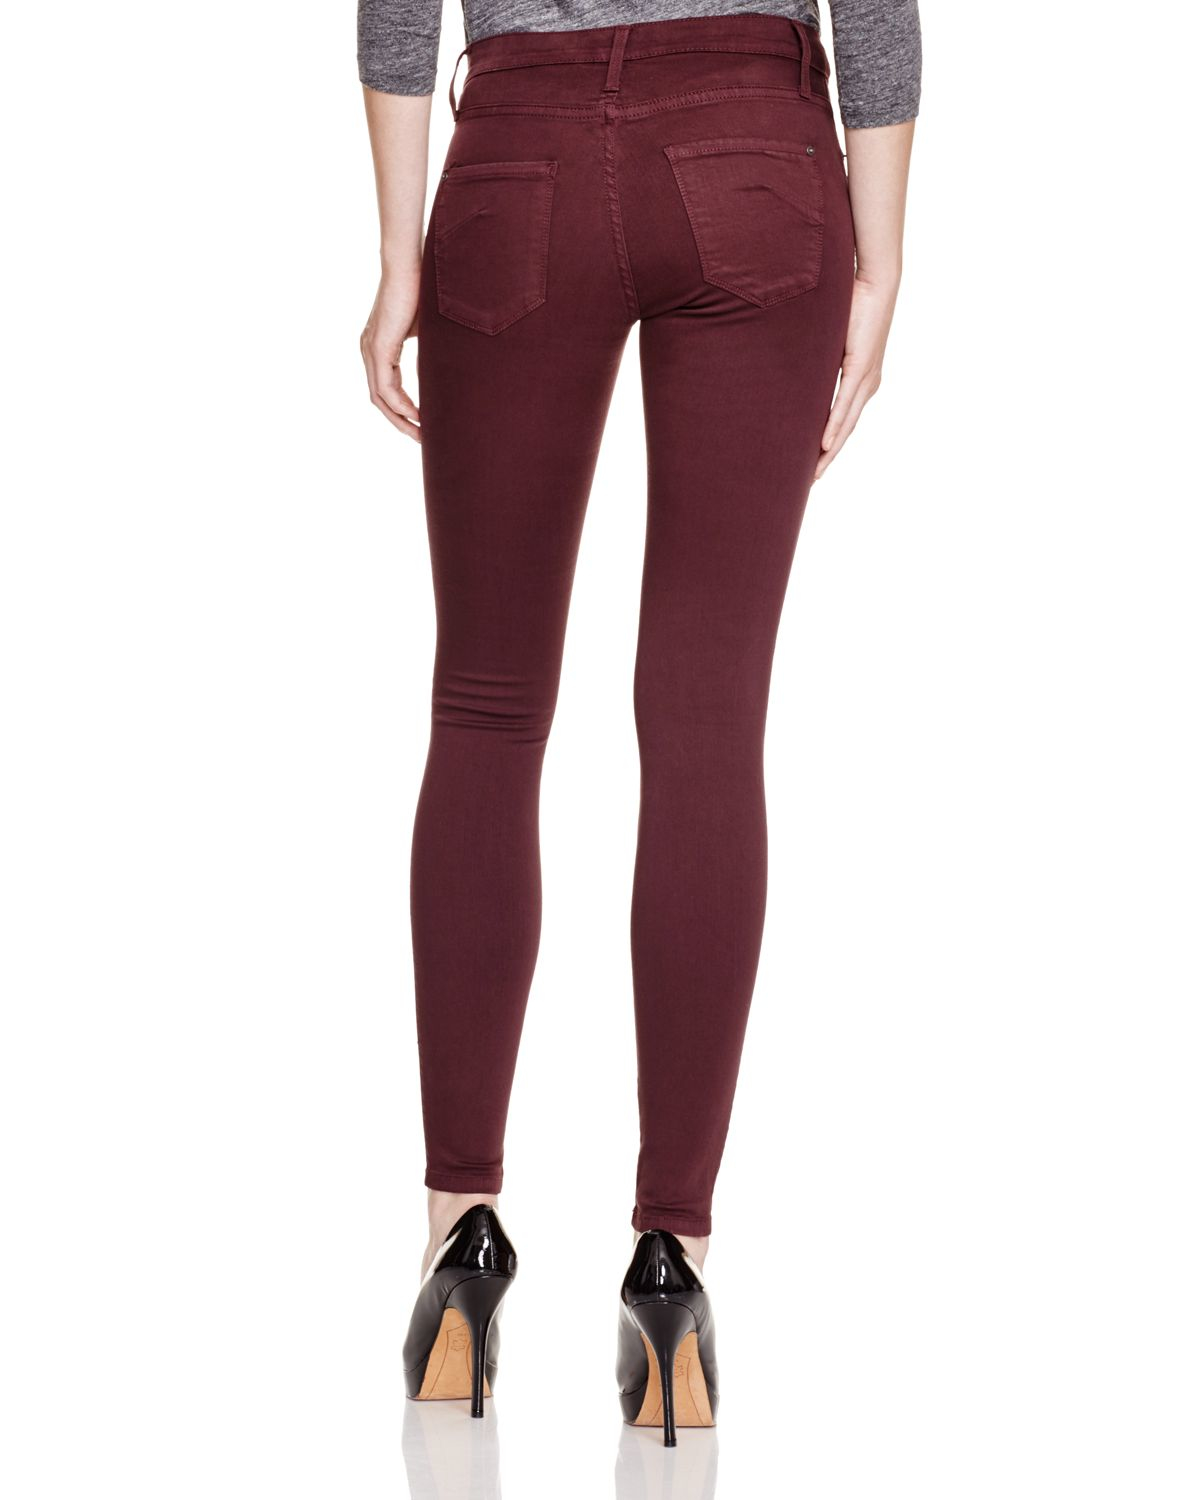 Cool Dark Red Denim Stretch Skinny 2016 Spring Fashion Female Jeans Pants